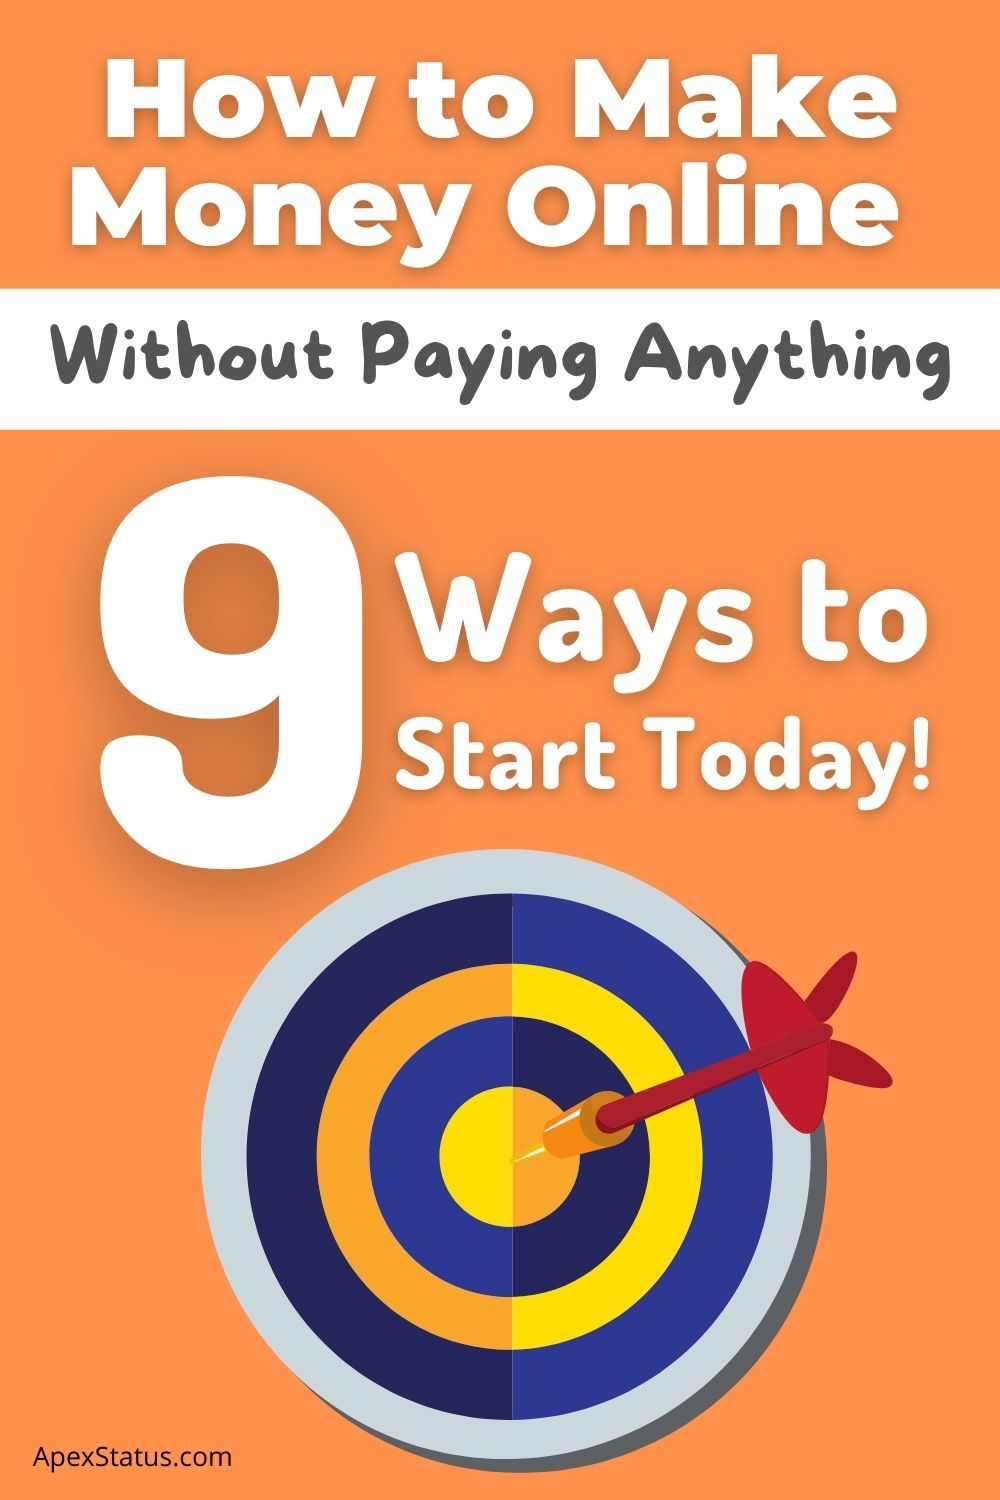 How to Make Money Online Without Paying Anything 9 Ways to Start Today